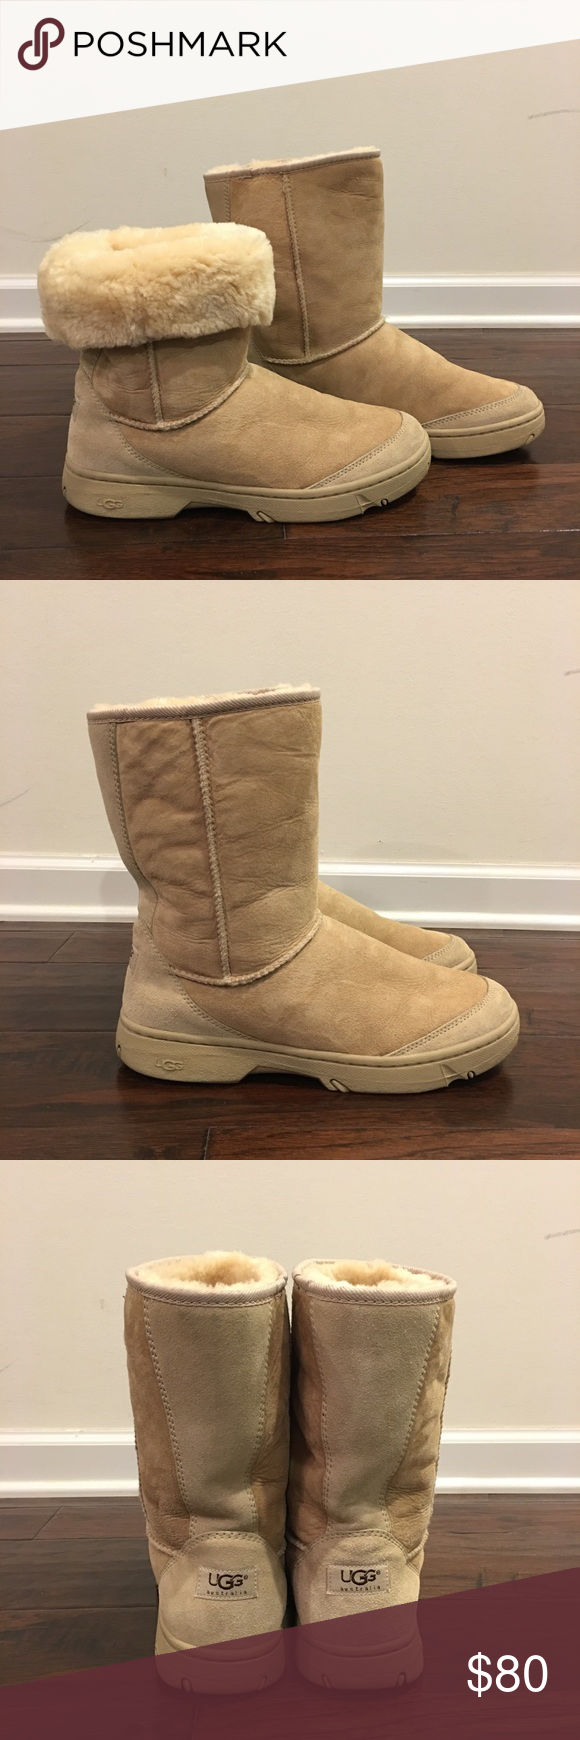 dac405cb265 AuthUGG Ultra Revival Genuine Shearling Short Boot Authentic UGG ...